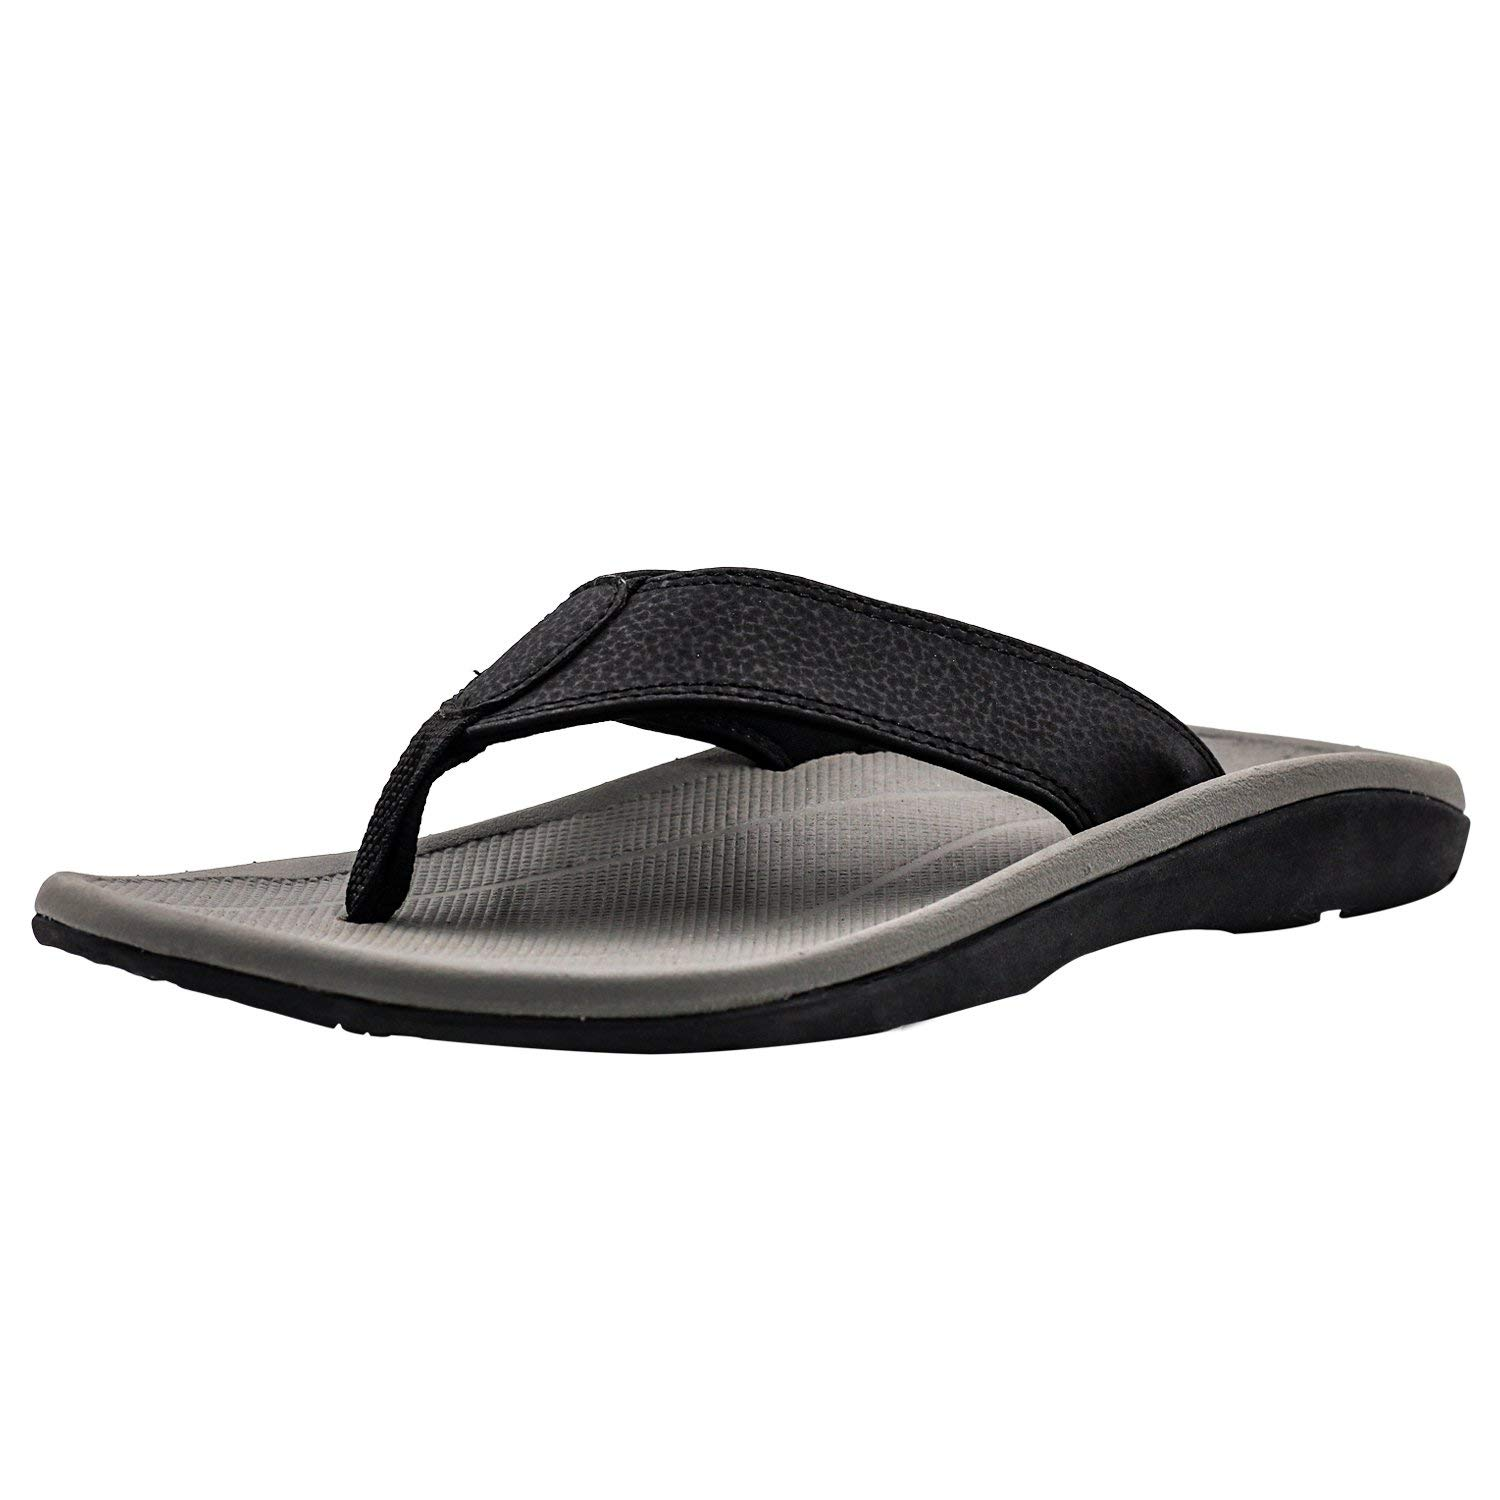 211bb5d08887 V.Step Flip Flops with Arch Support Men s Orthotic Comfort Casual Slippers  Sandals Flat Thong